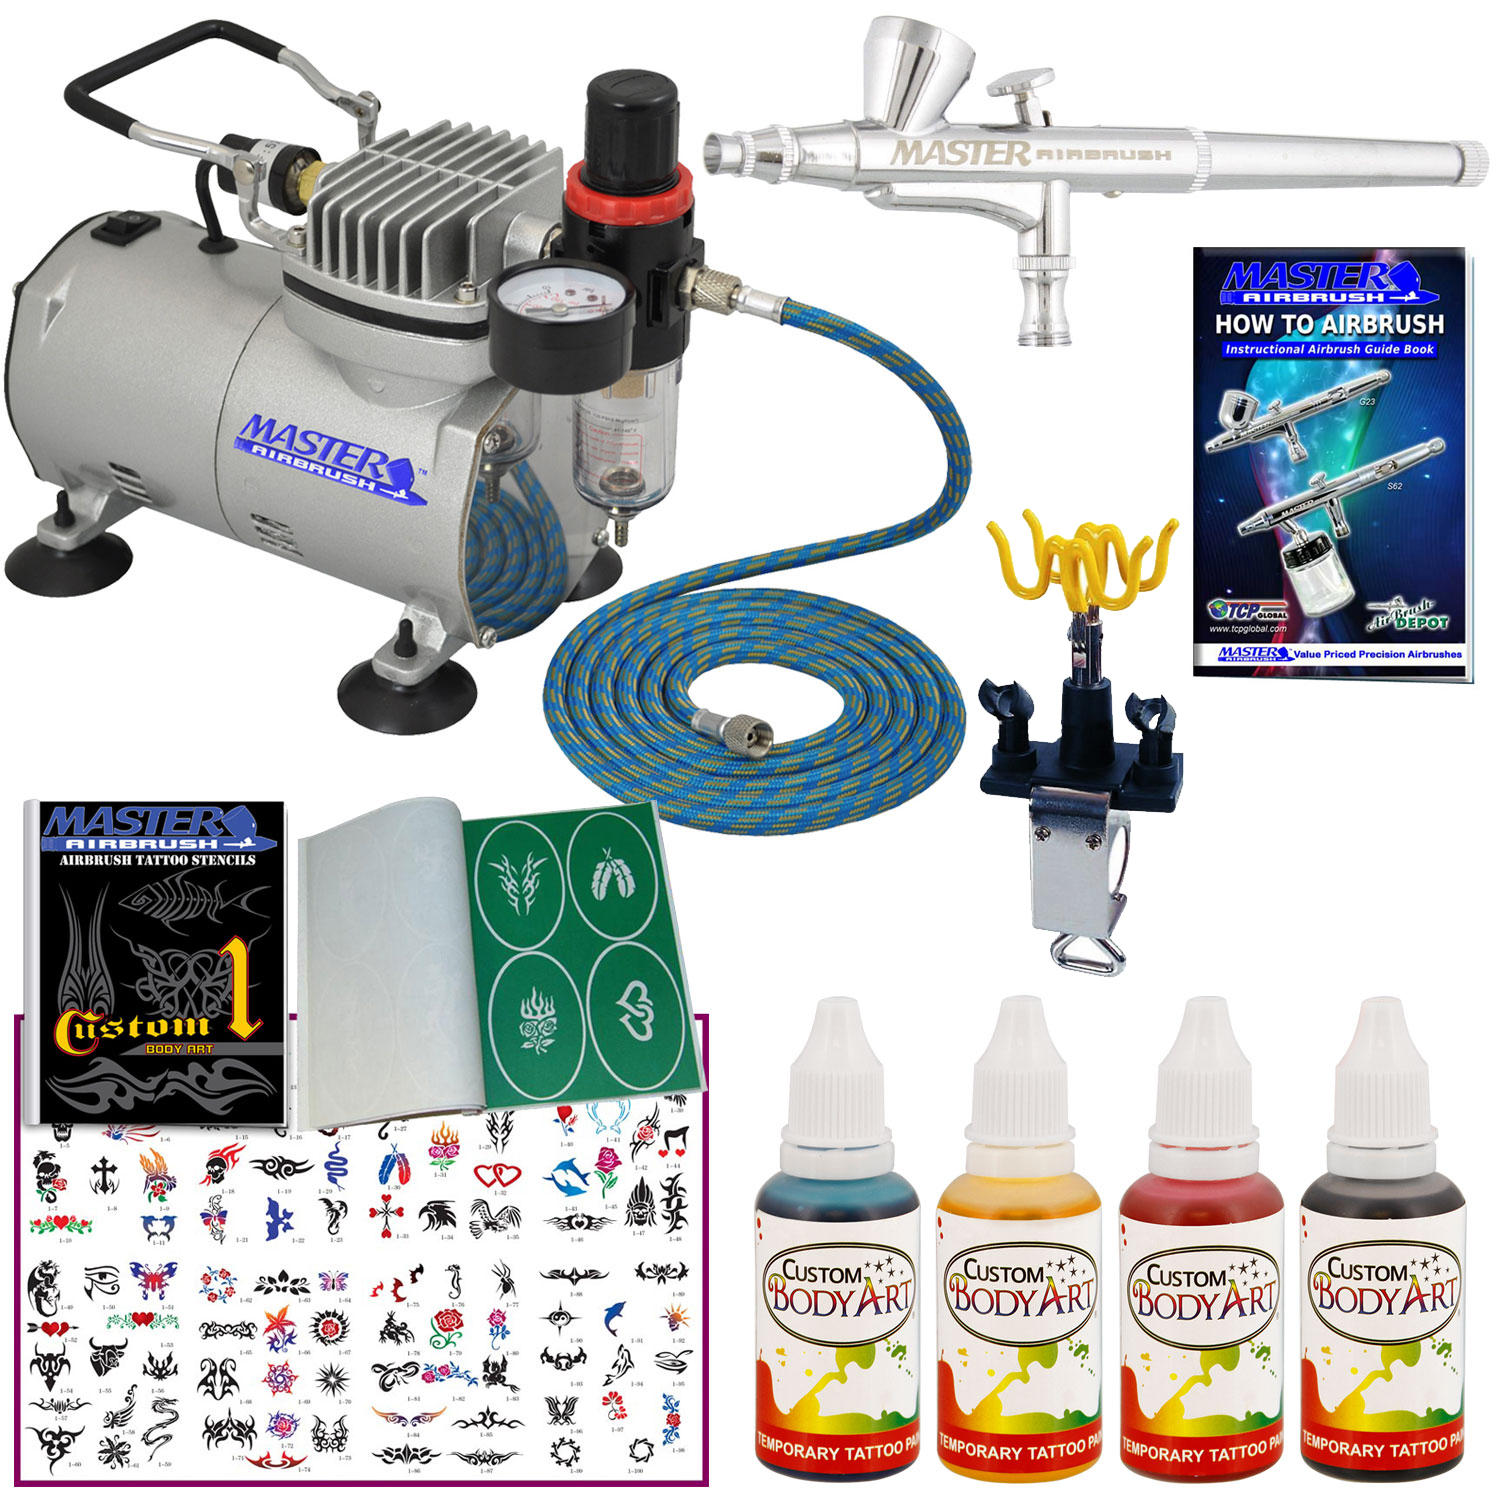 Complete TEMPORARY TATTOO AIRBRUSH AIR COMPRESSOR KIT Body